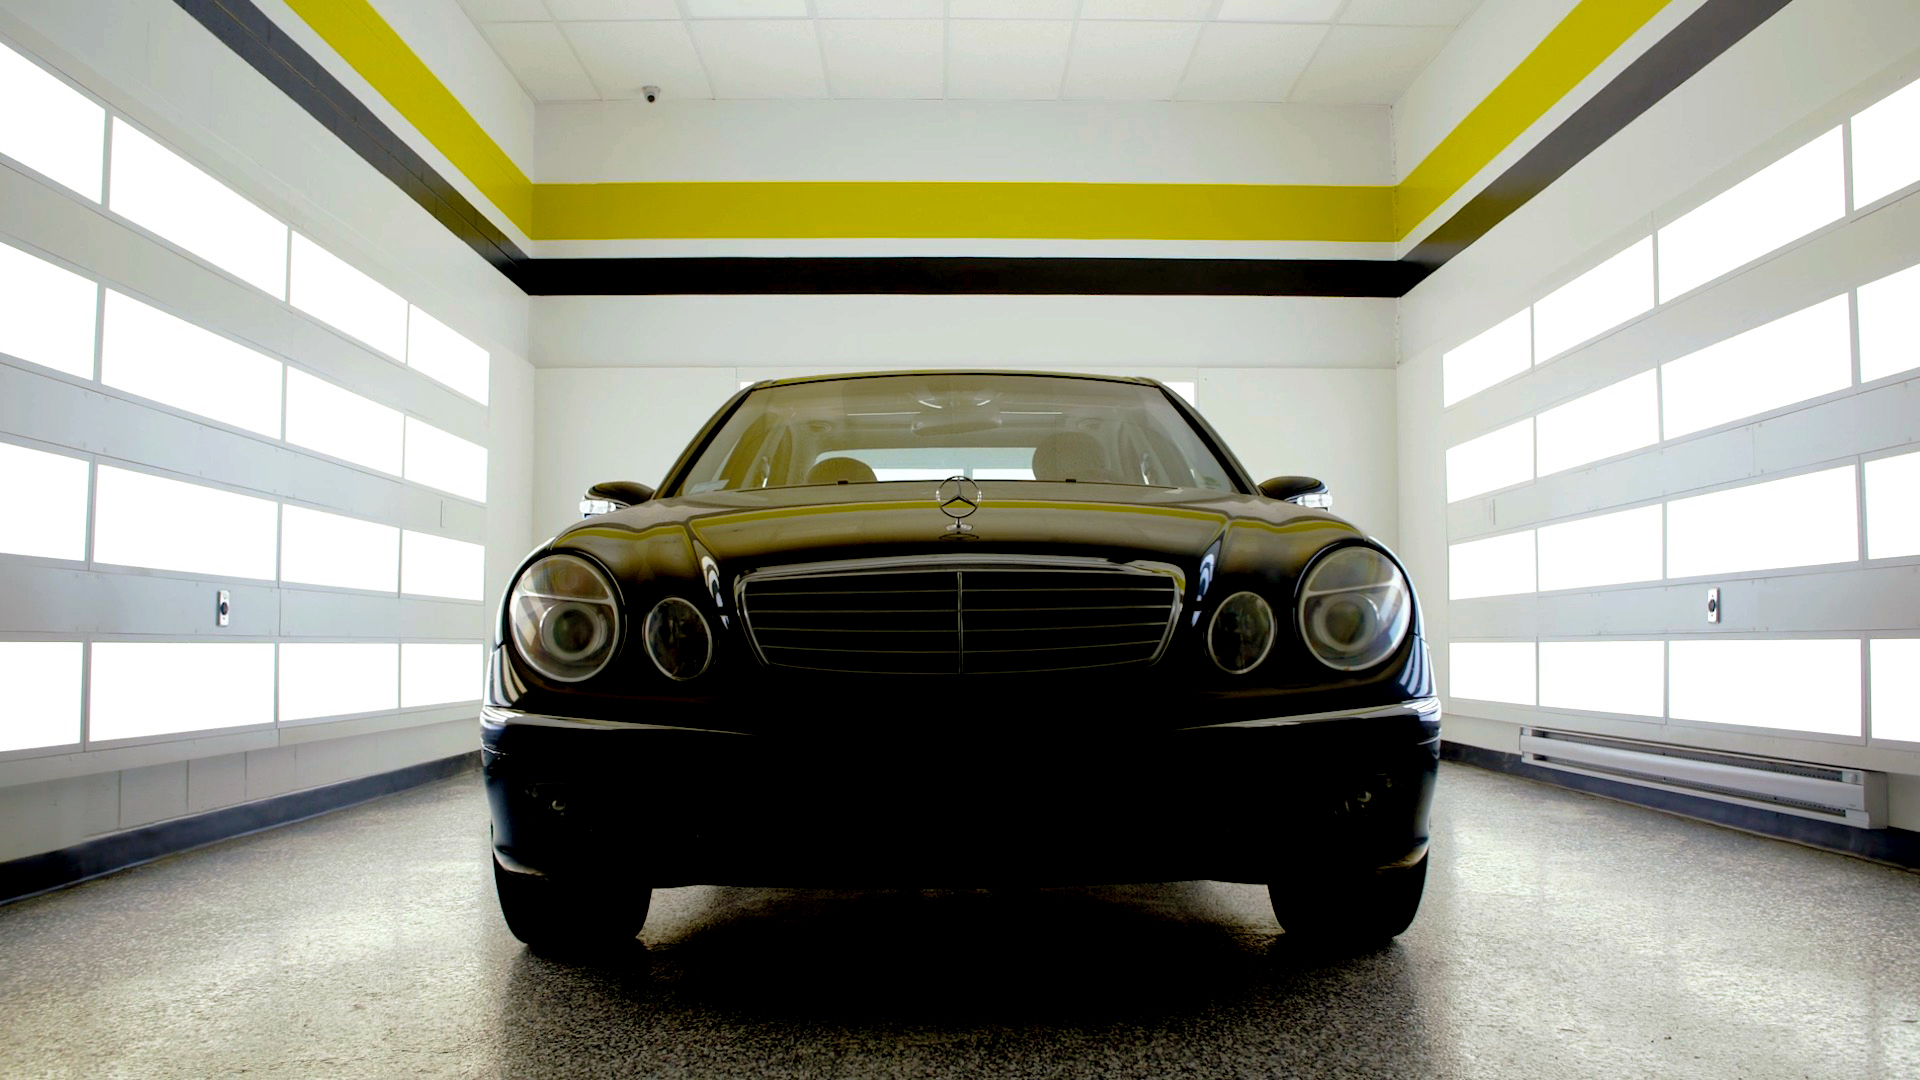 A black sedan in a RestorFX Center dramatically lit from both sides with yellow and black solid bands on high walls